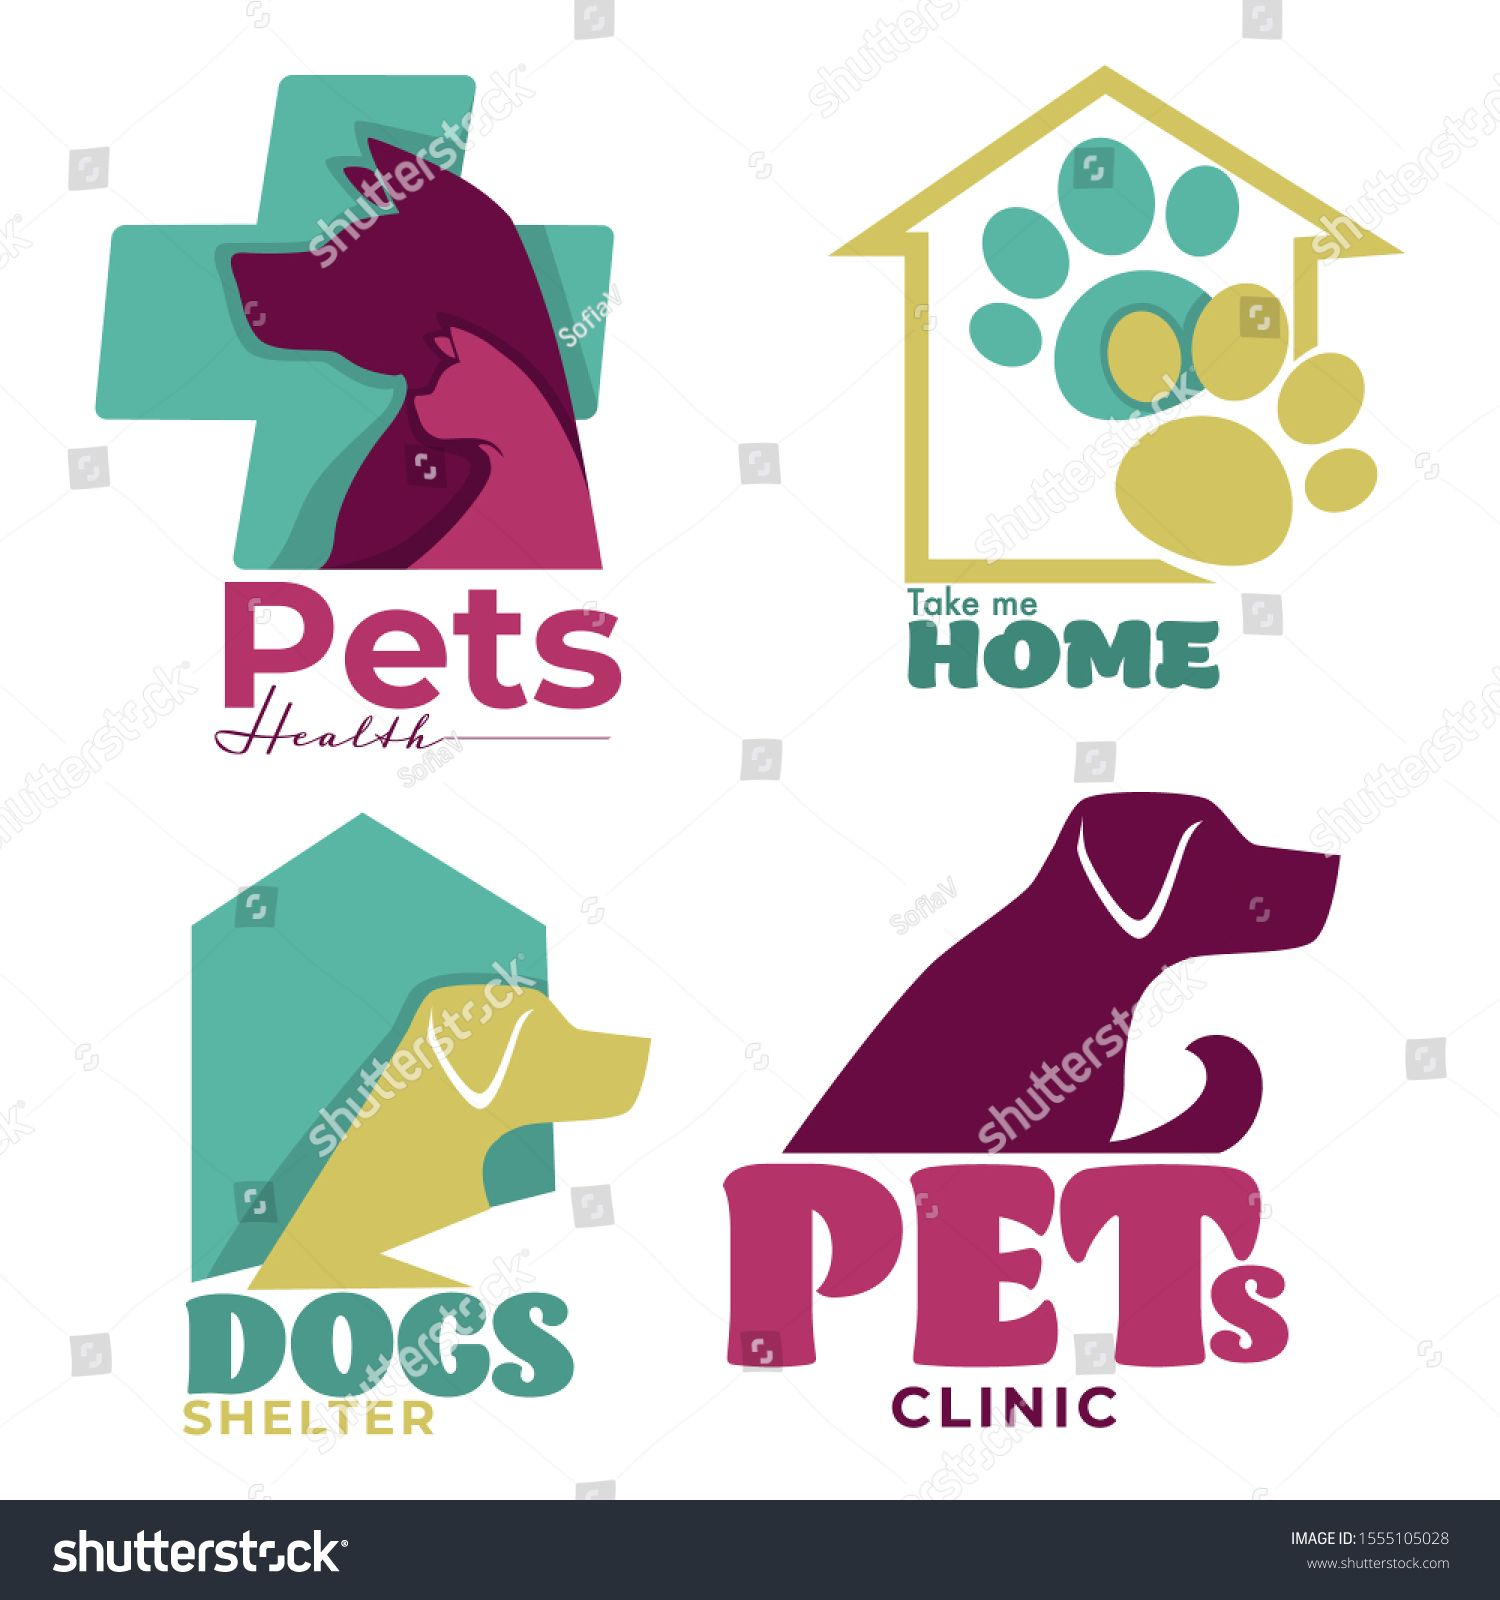 Pets Health Take Me Home Animal Shelter And Veterinary Clinic Logo Rescue Dog Cat Silhouette Above Medical Cross Pa Shelter Dogs Cat Silhouette Clinic Logo